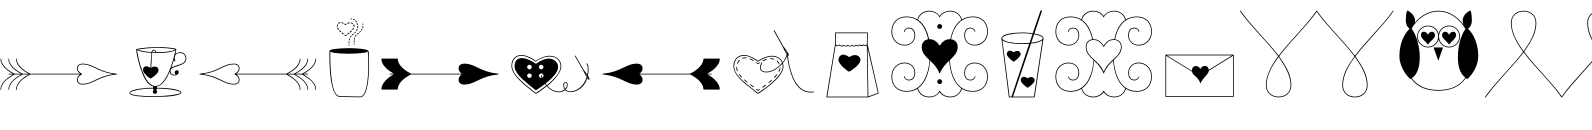 LoveStory Dingbats